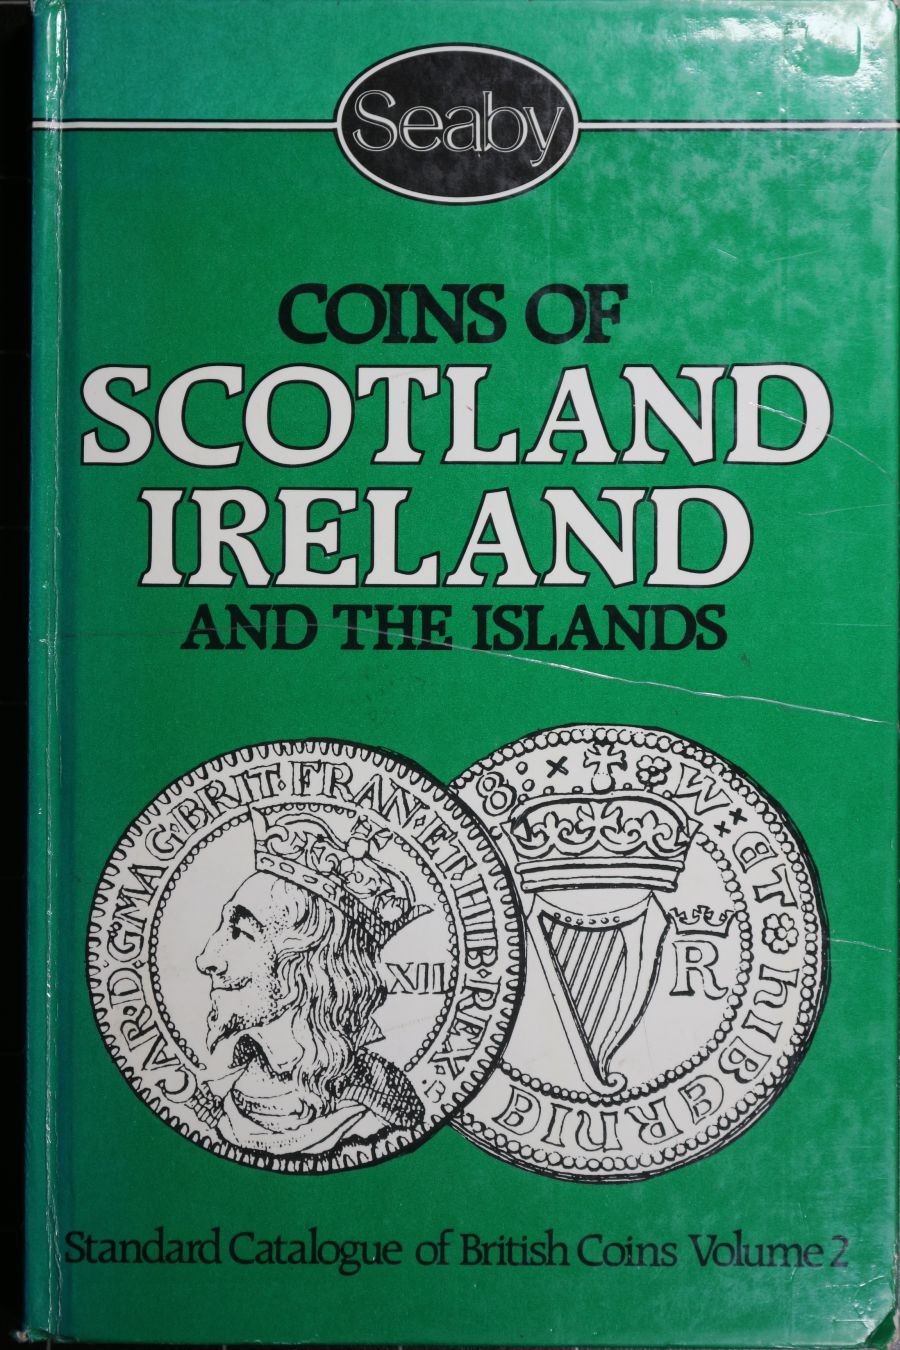 Coins of Scotland Ireland and the islands,Peter Seaby and Frank Purvey